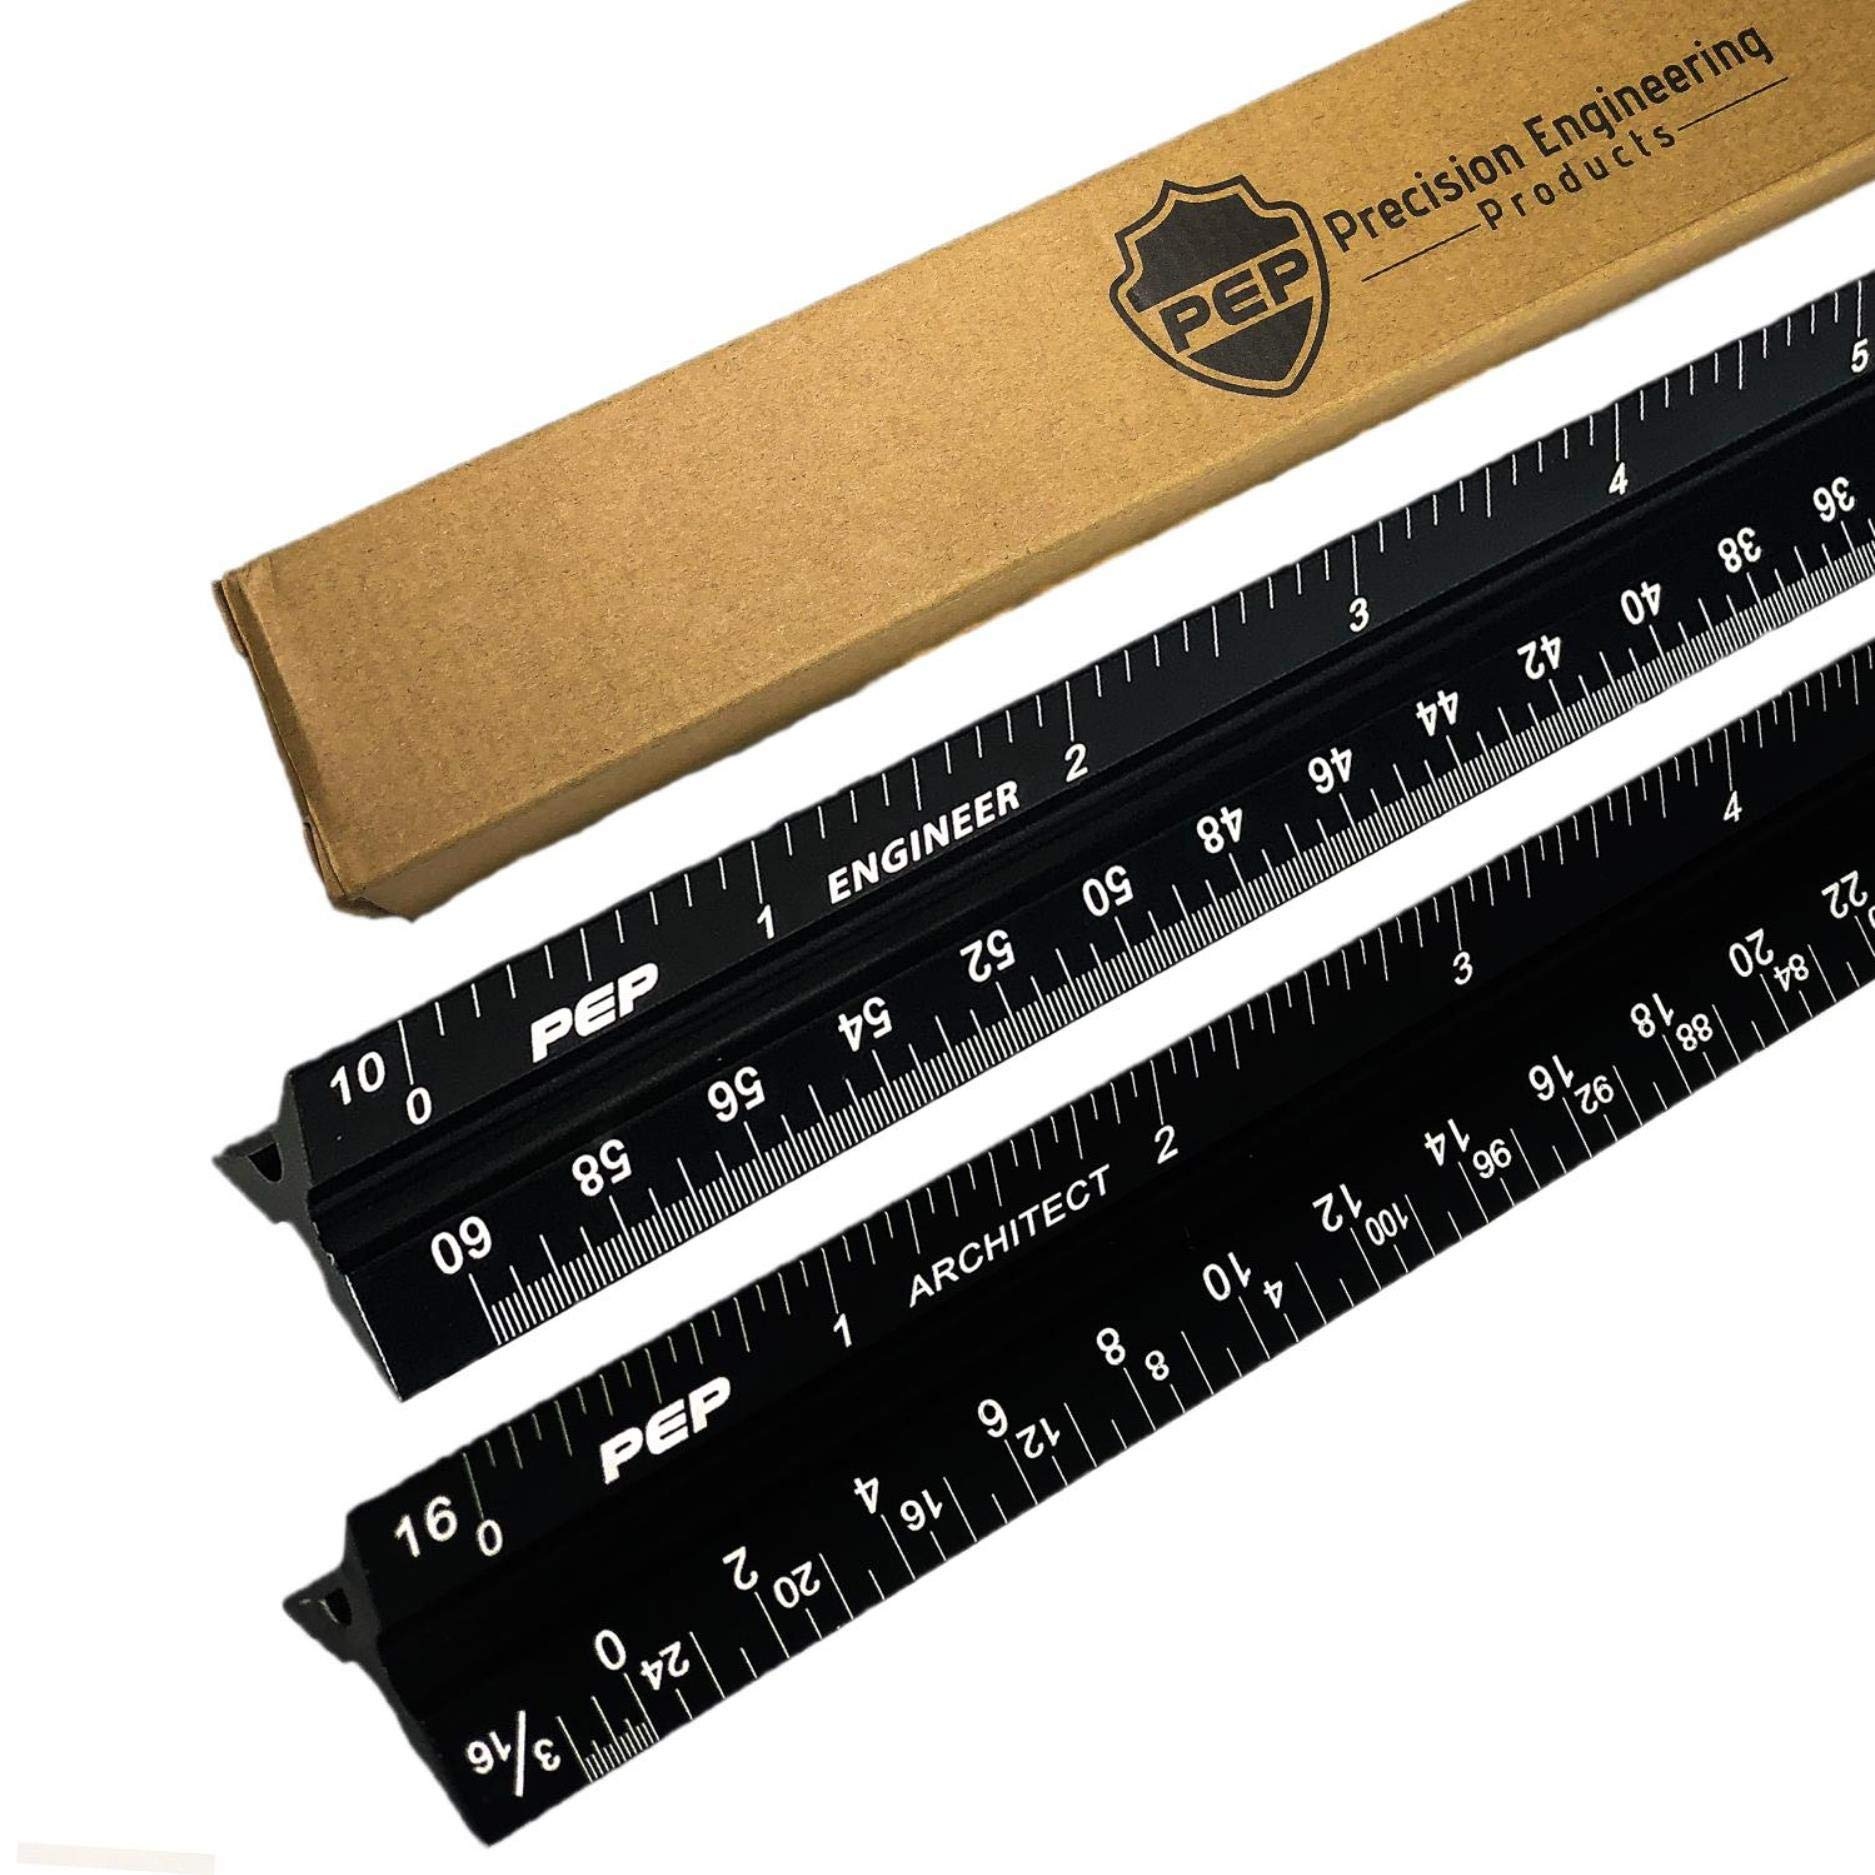 "Precision Engineering Products – 12"" Aluminum Architect Scale Ruler and Engineer Scale Ruler Set – Black Triangular Drafting Straight Edge – Imperial Triangle Scale with Laser Etched Markings by Precision Engineering Products (Image #1)"